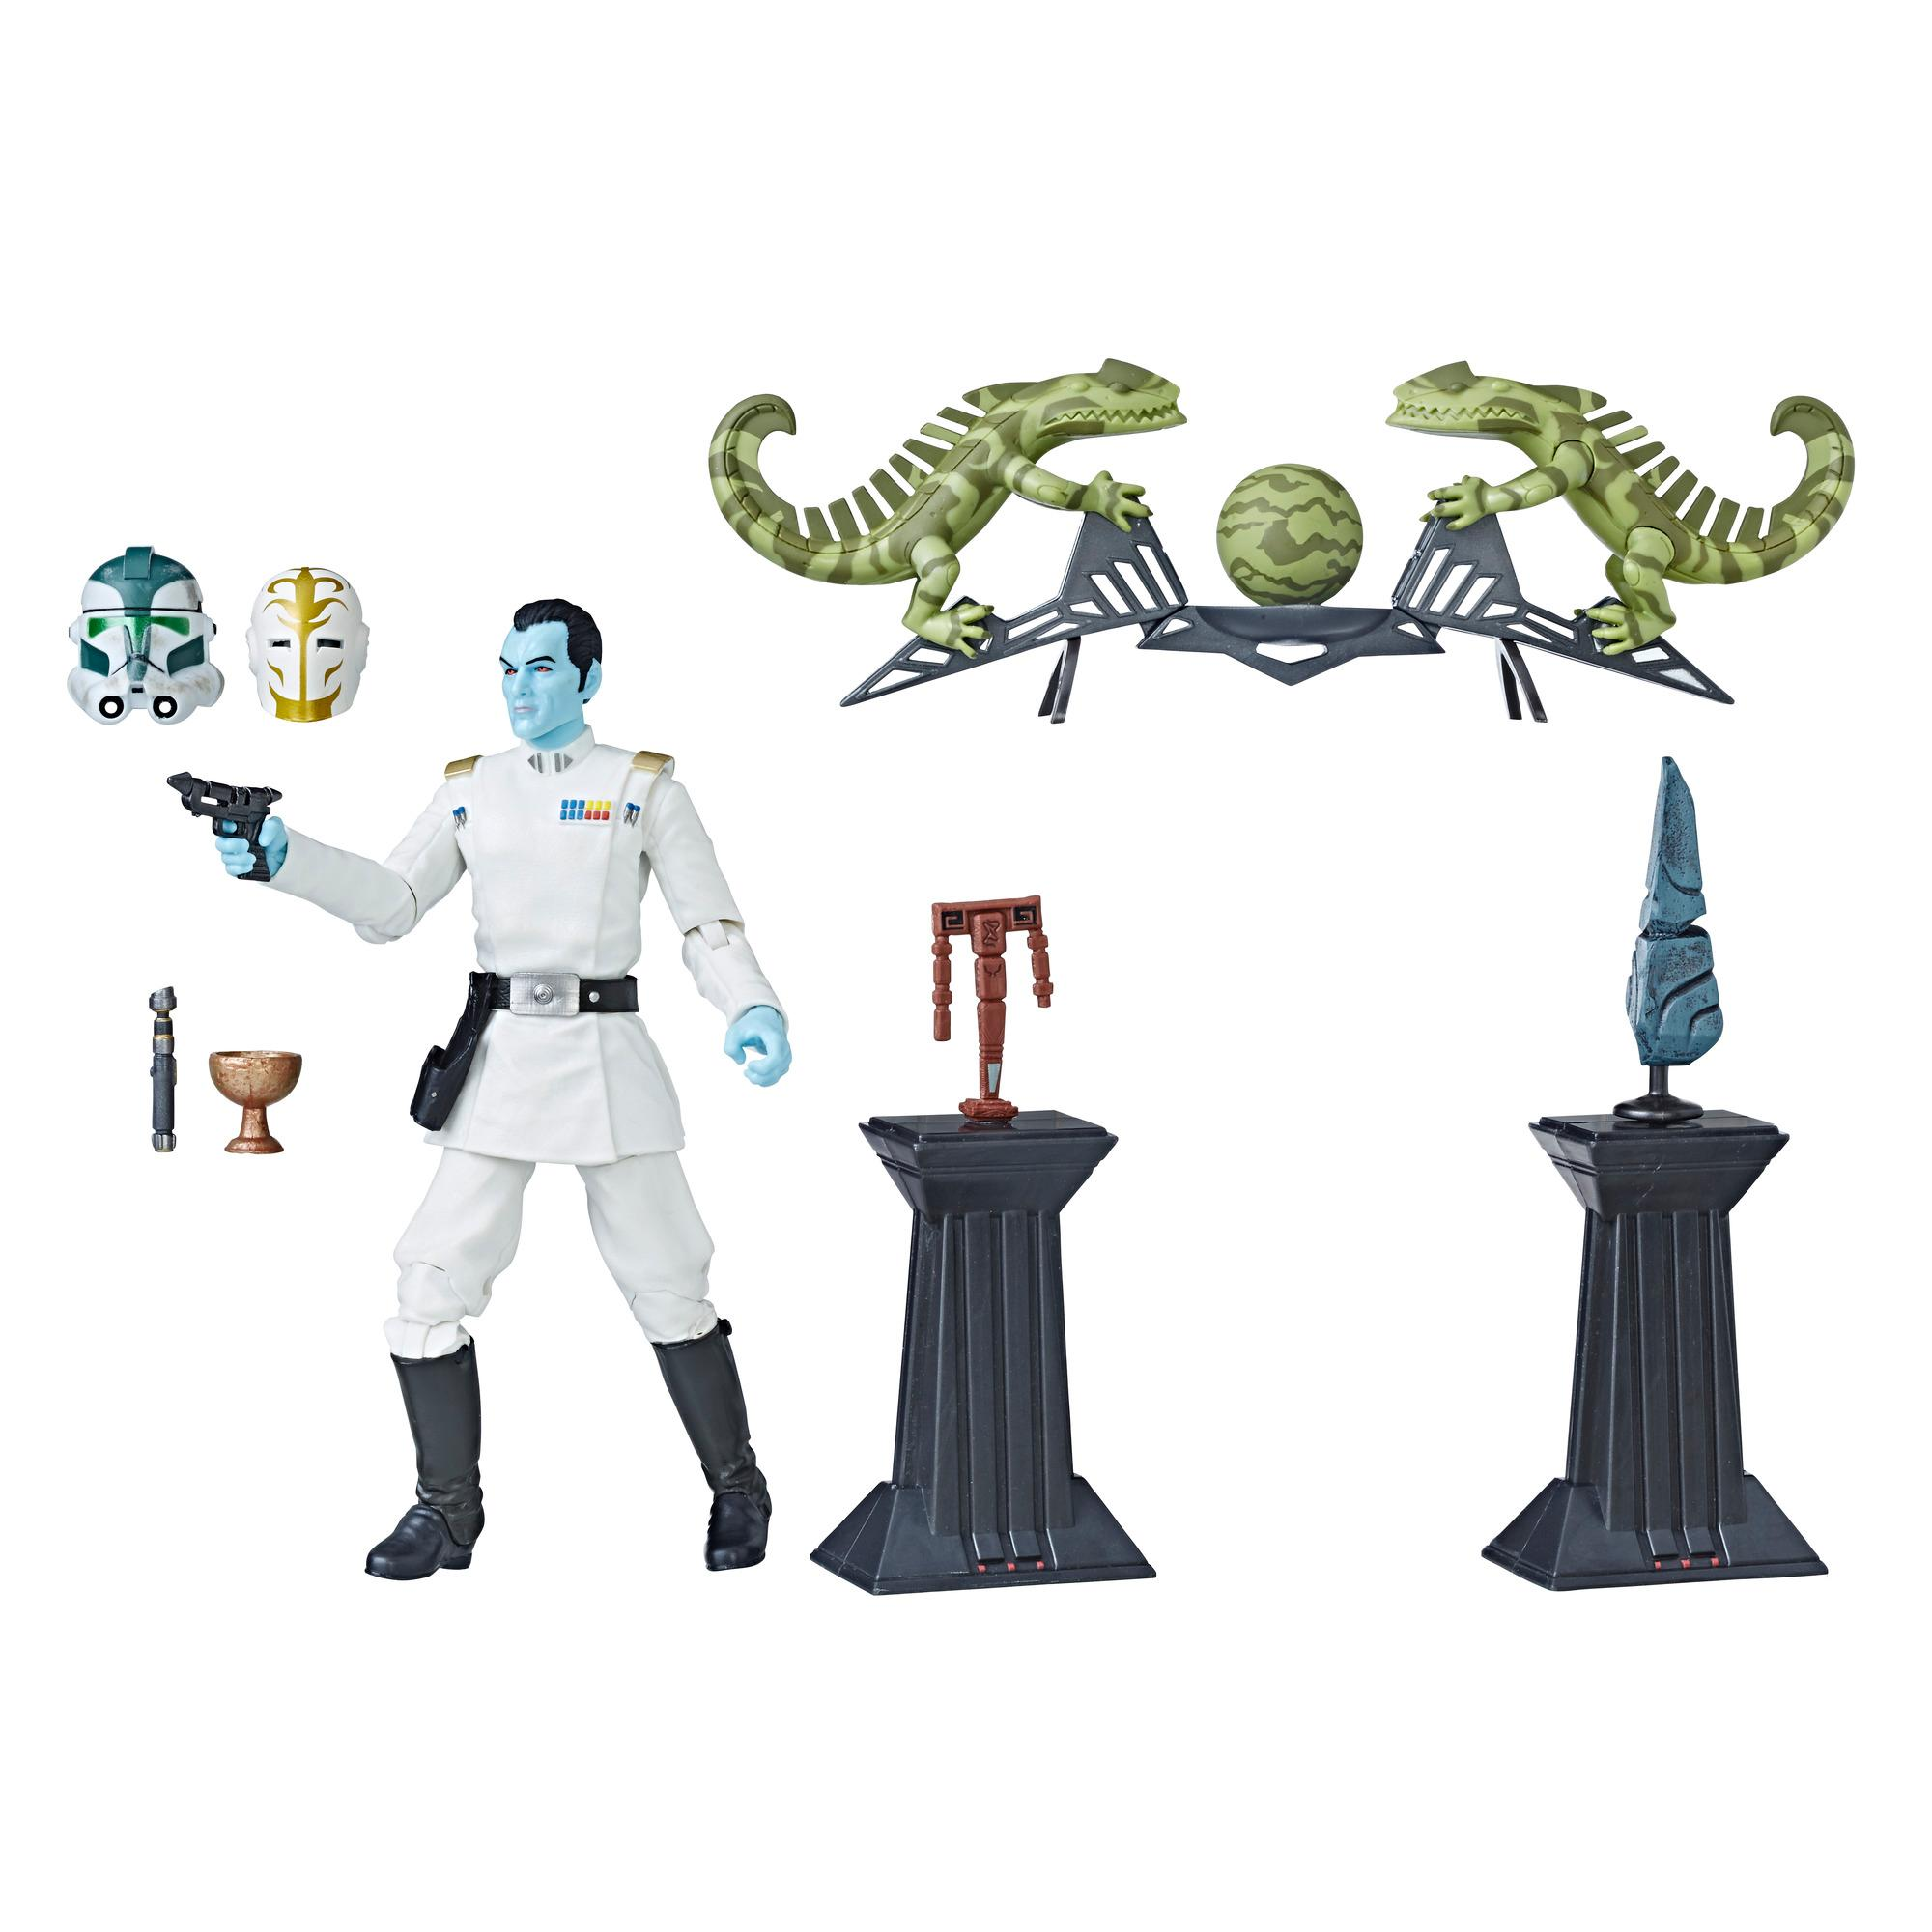 Star Wars The Black Series – Gran almirante Thrawn